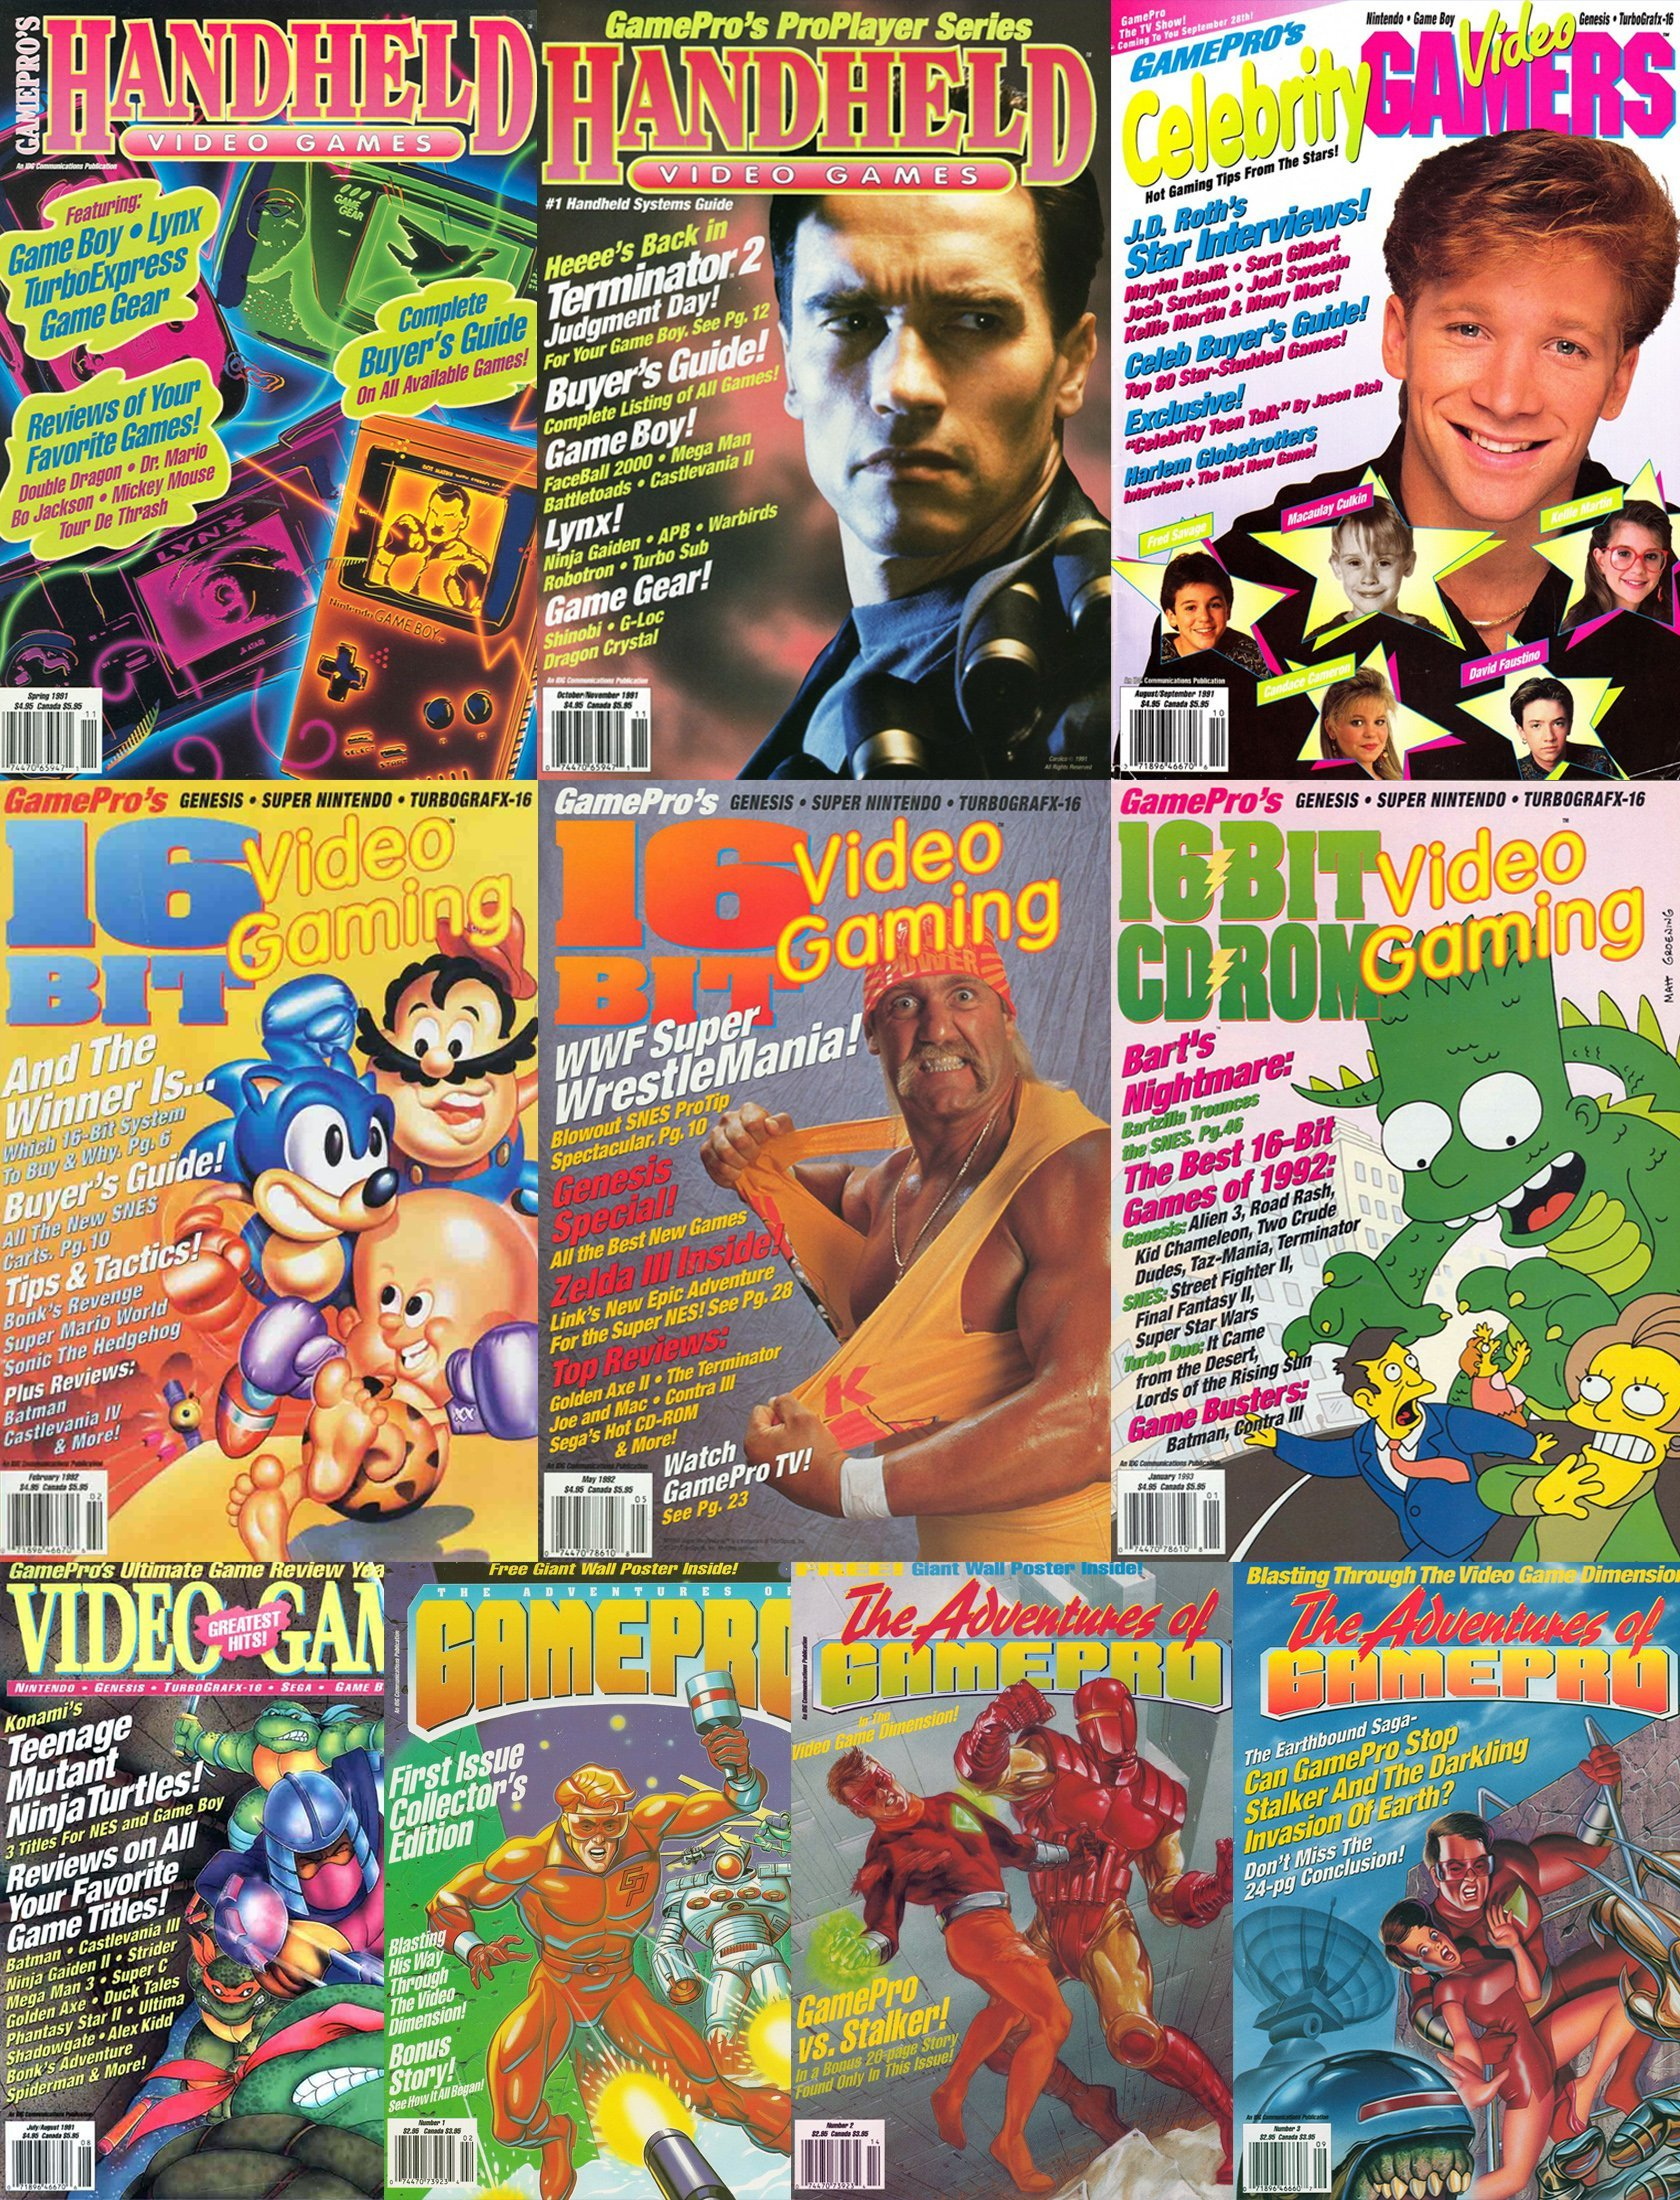 GamePro Issue 081-090 fill-in cover